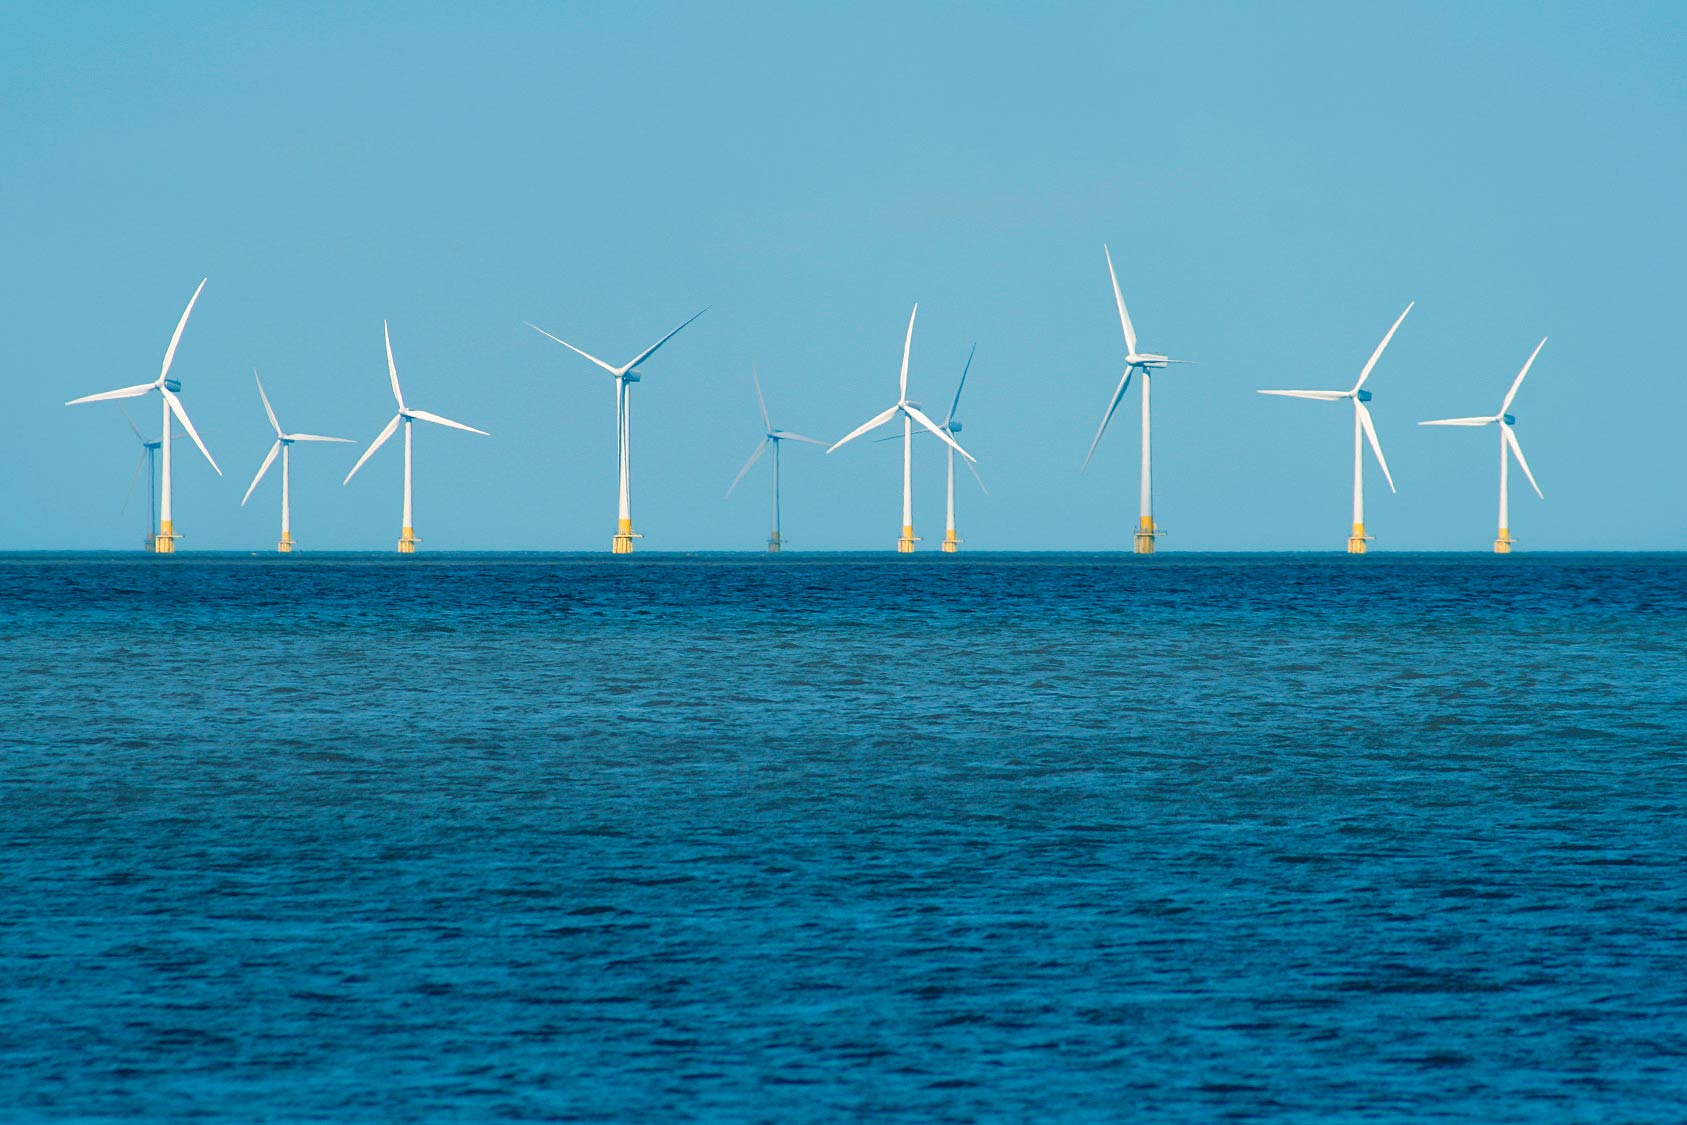 https://www.lkabminerals.com/wp-content/uploads/2019/03/offshore-wind-structures-wind-farm.jpg